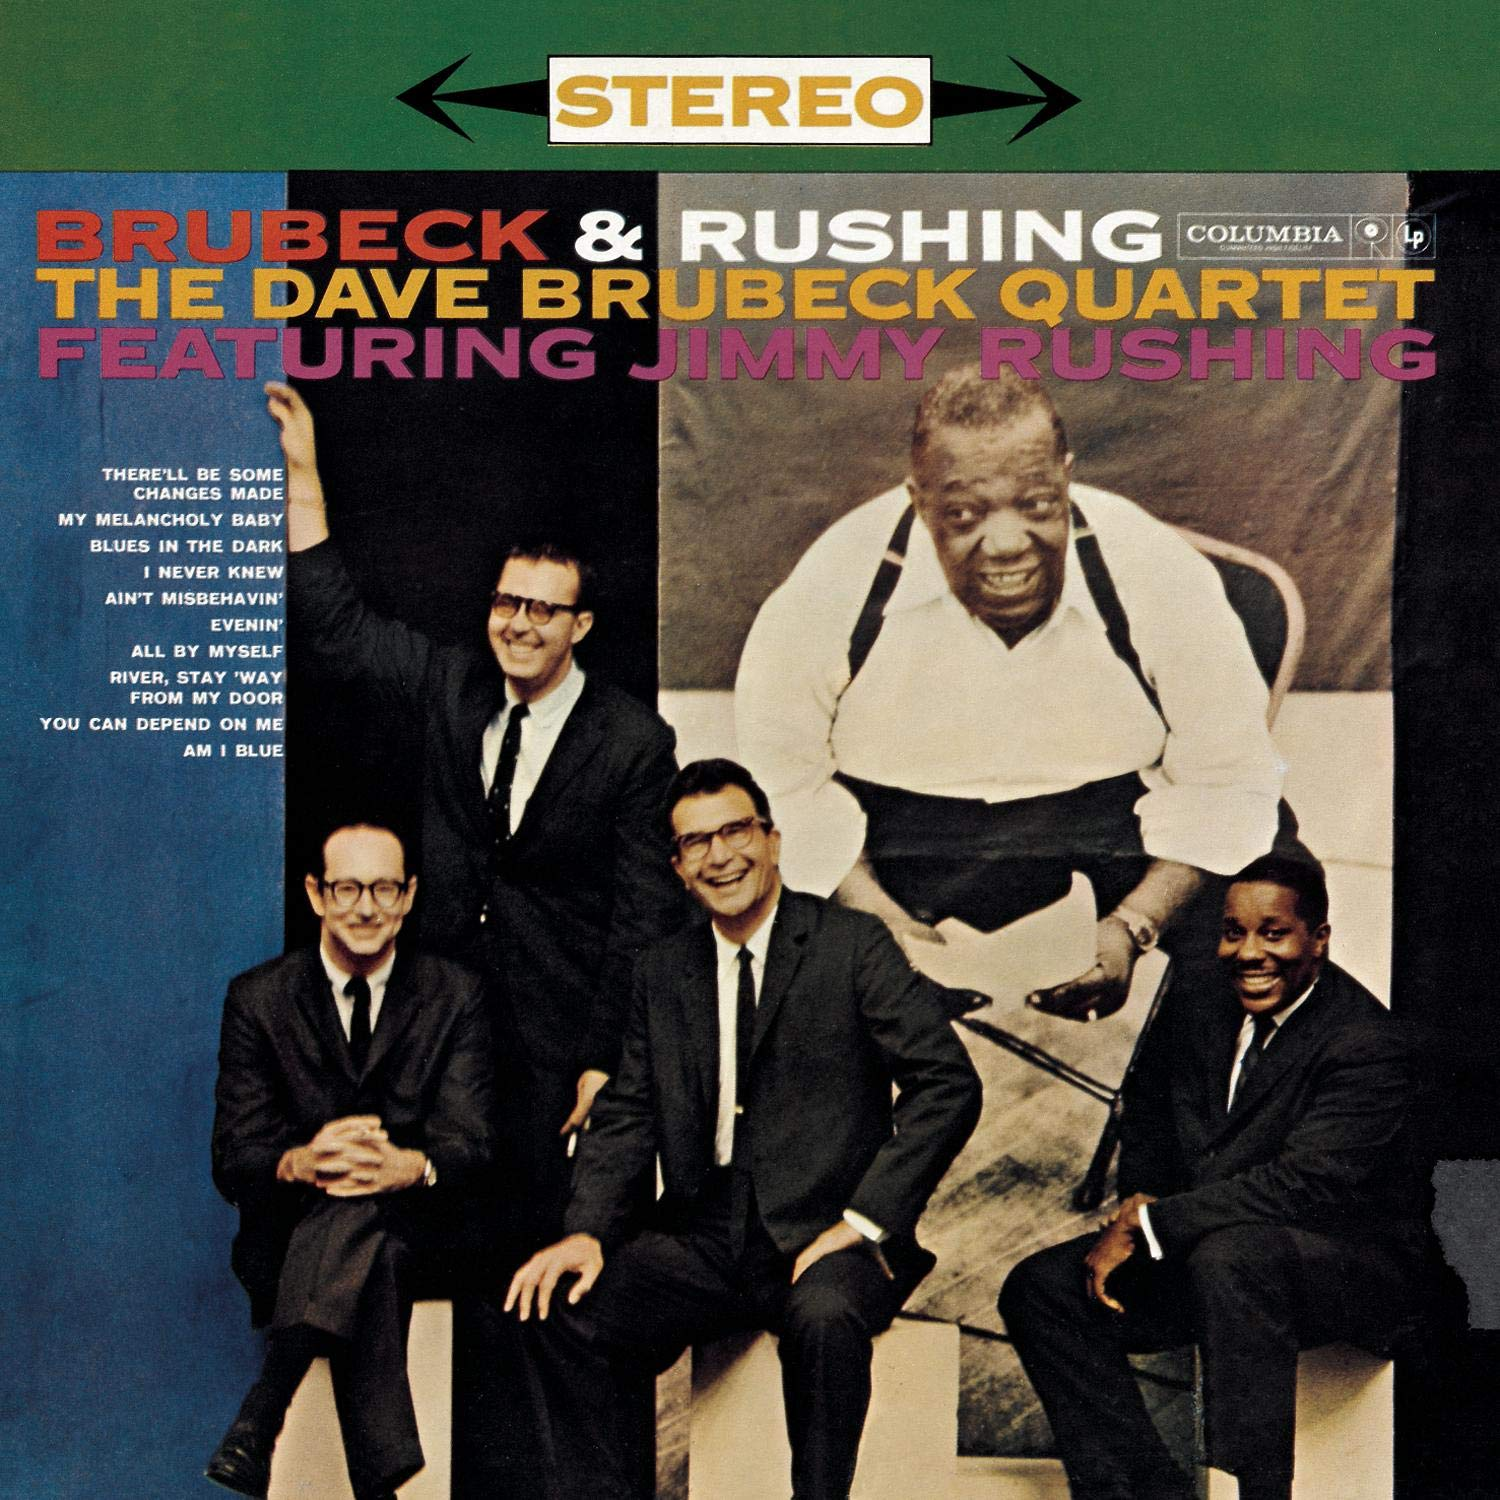 Dave Brubeck & Jimmy Rushing - Brubeck And Rushing - Amazon.com Music